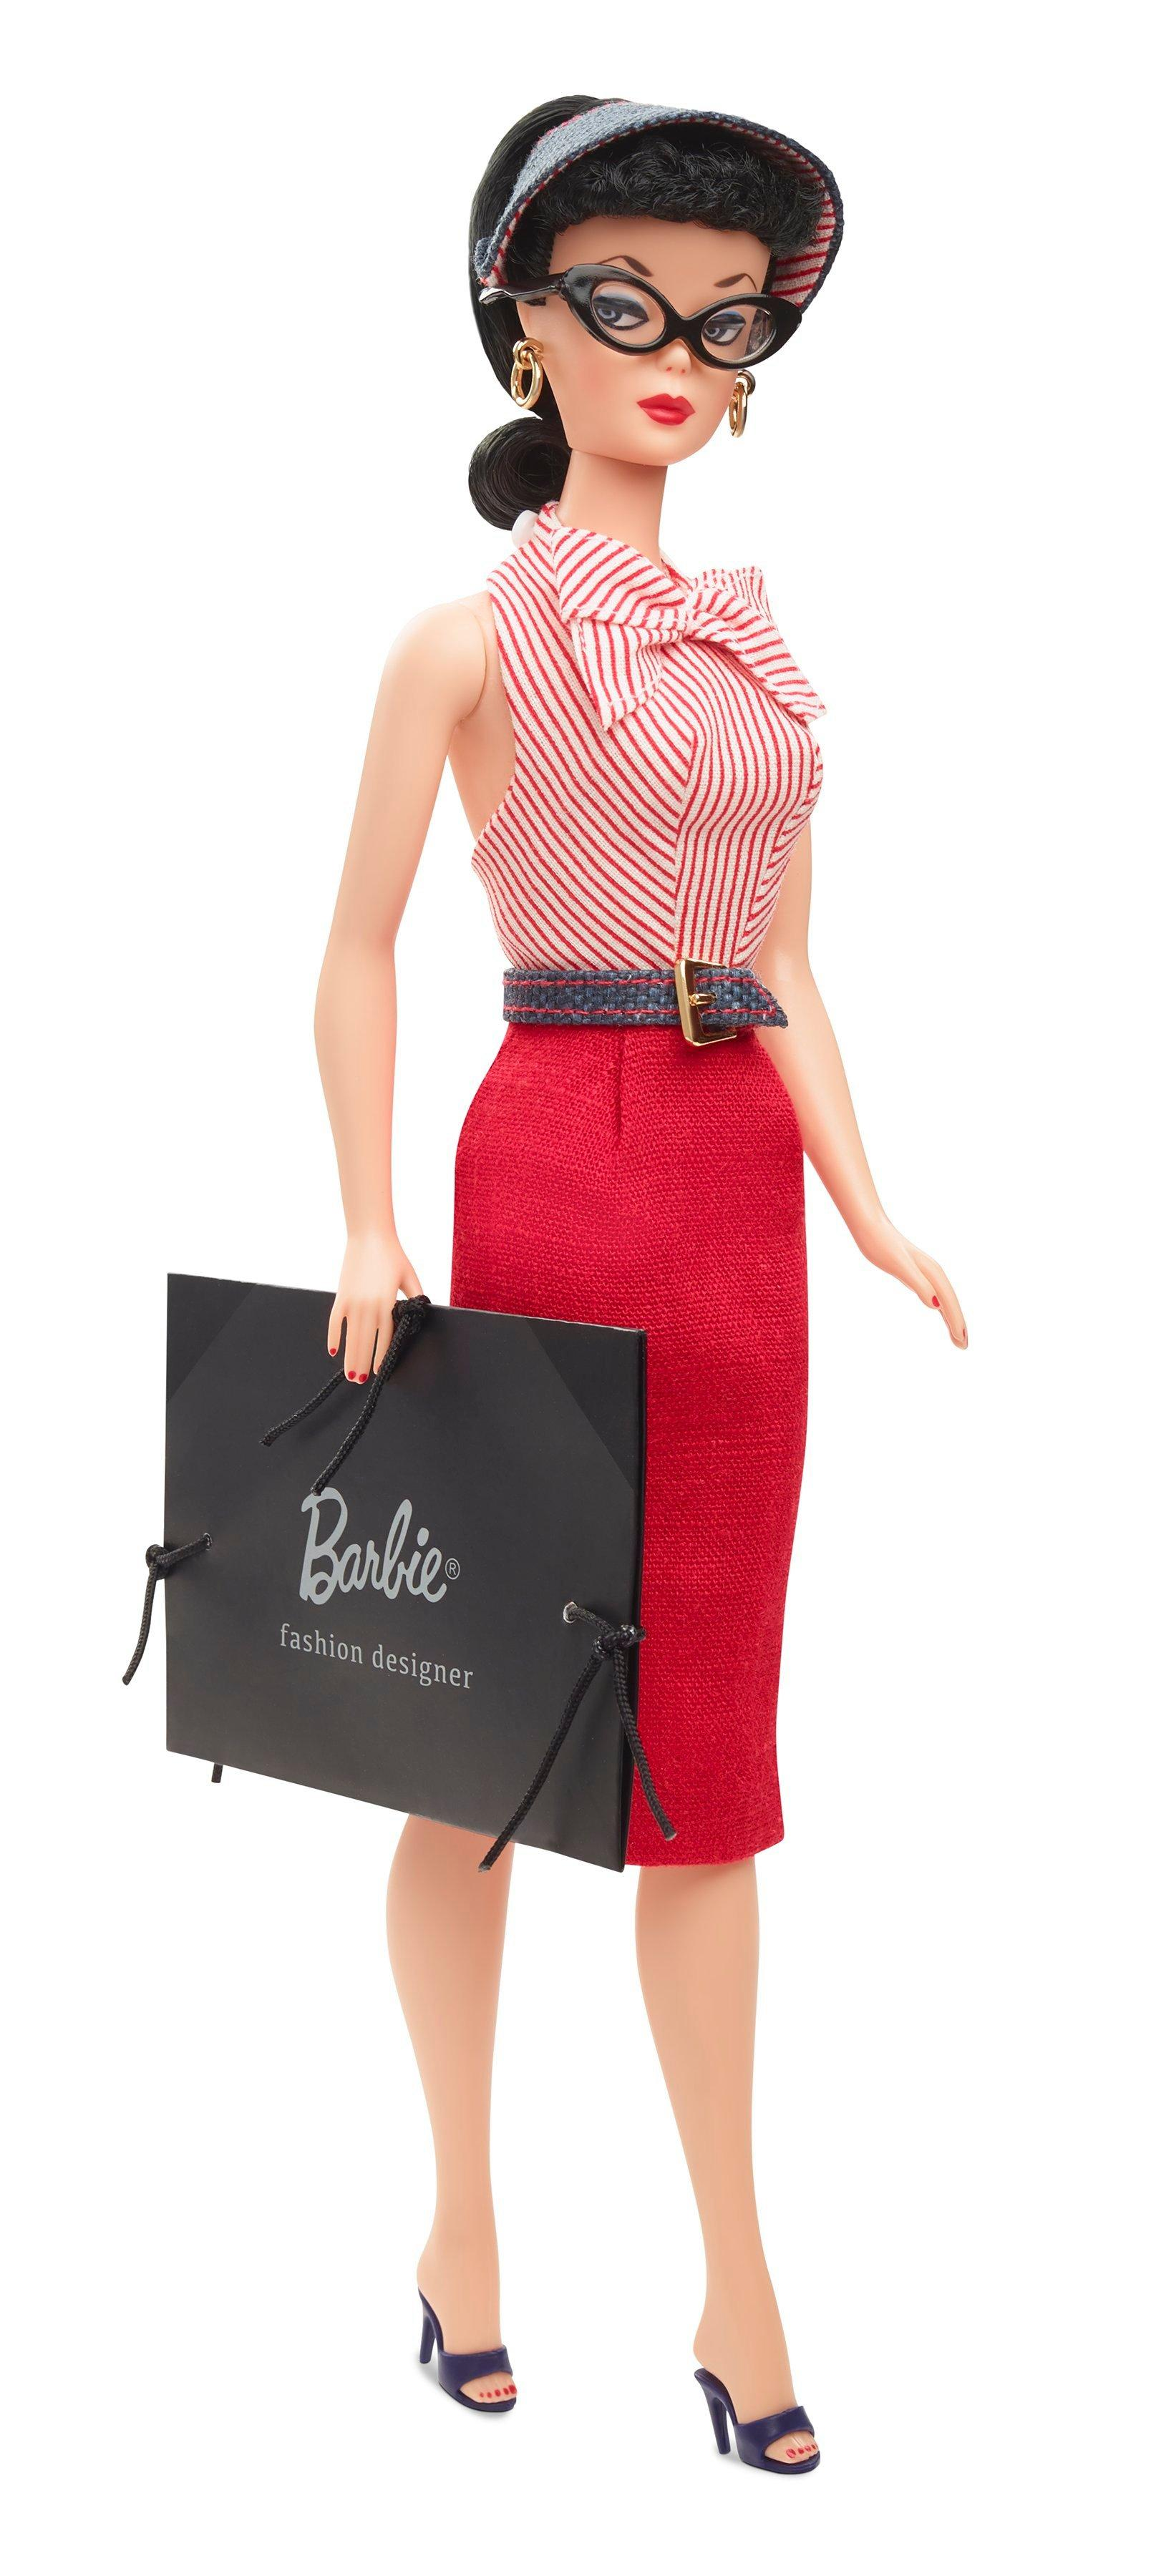 Busy Gal Fashion Designer Barbie Doll Gamestop